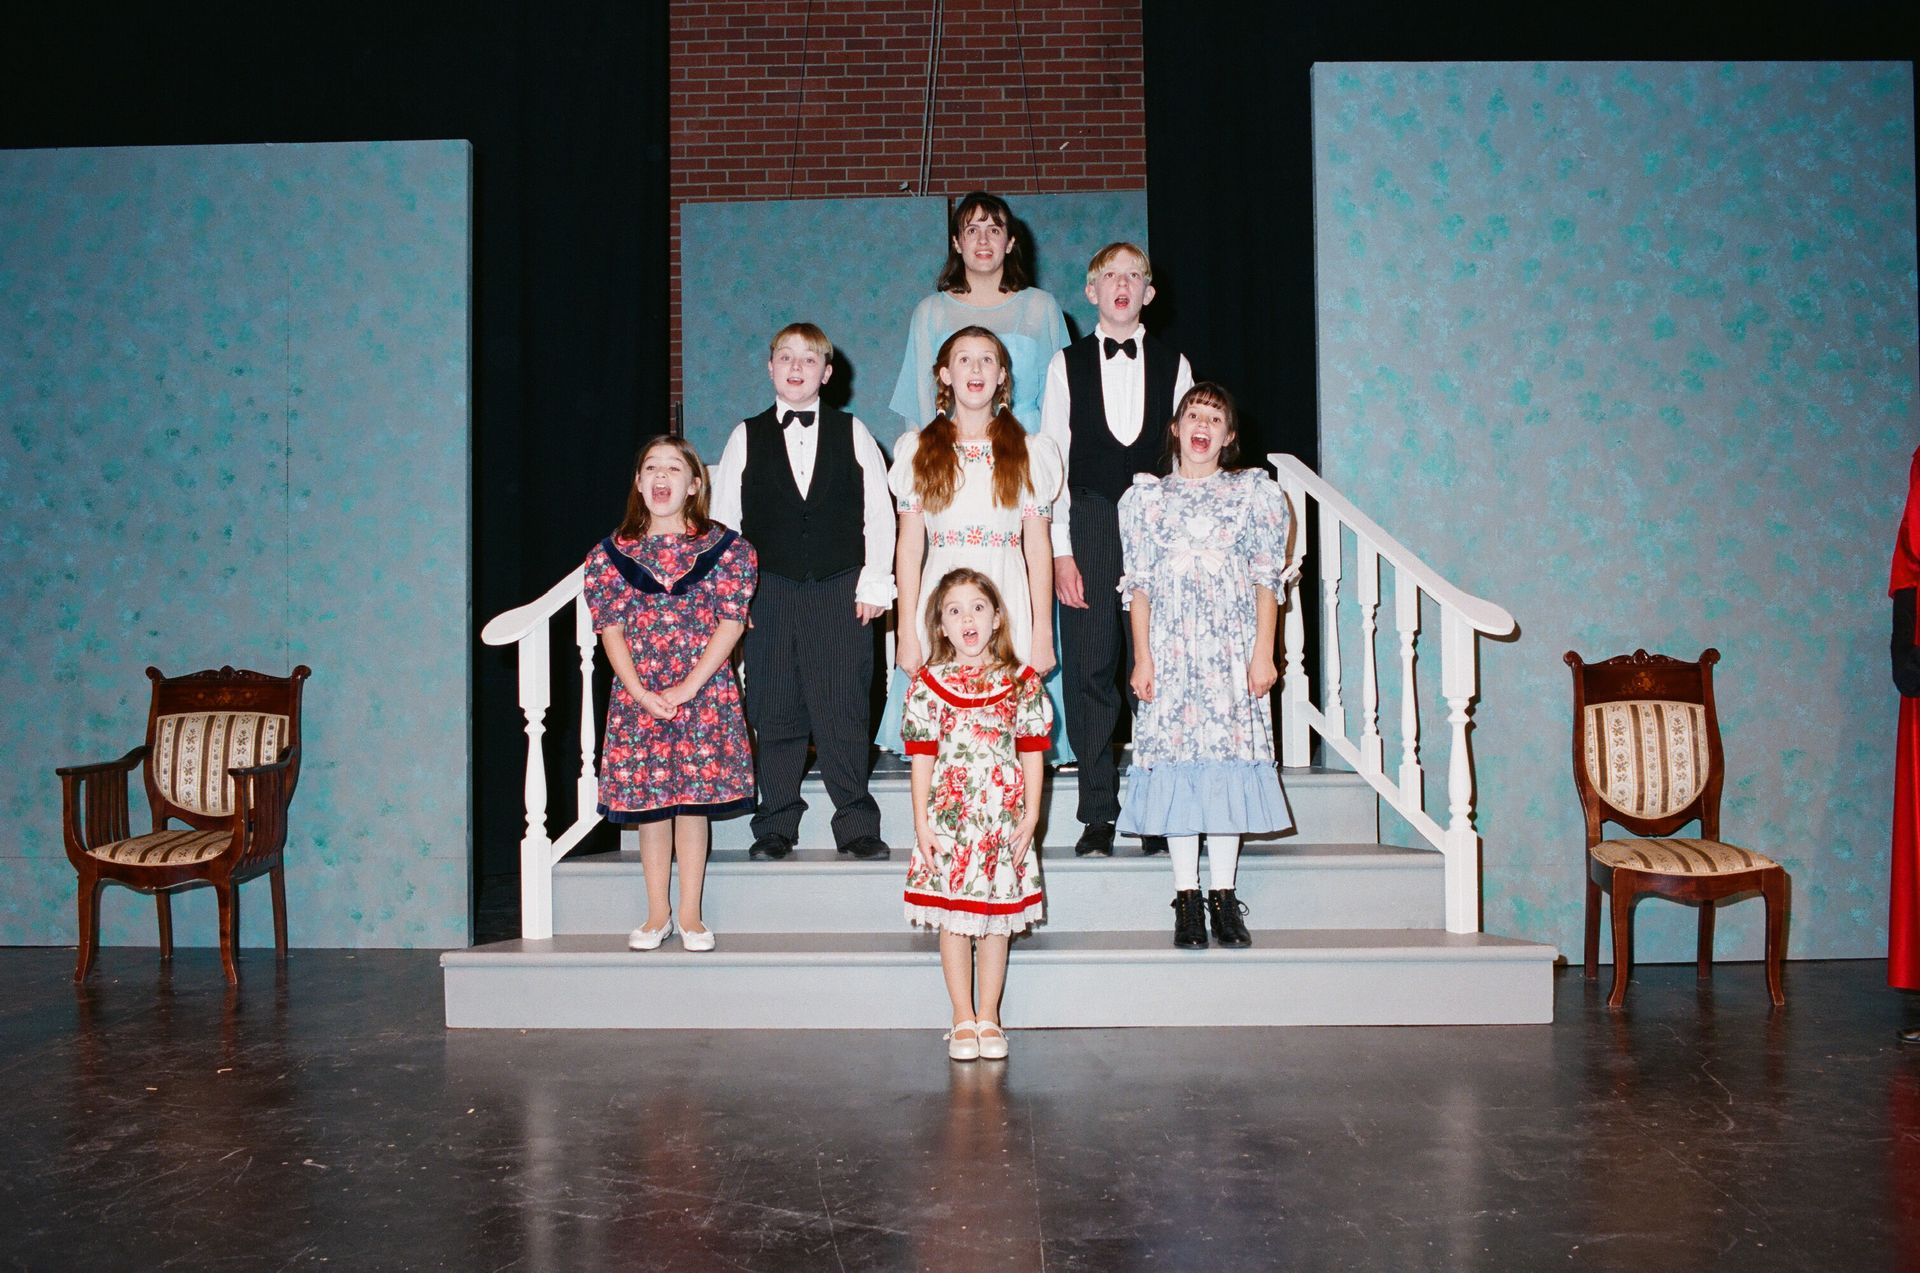 Kari Rostad, Taylor Dean, Tanya Willott, Stefanie Barnfather, Jessica Cantwell, Matthew Kerr and Julia Maxwell in The Sound of Music